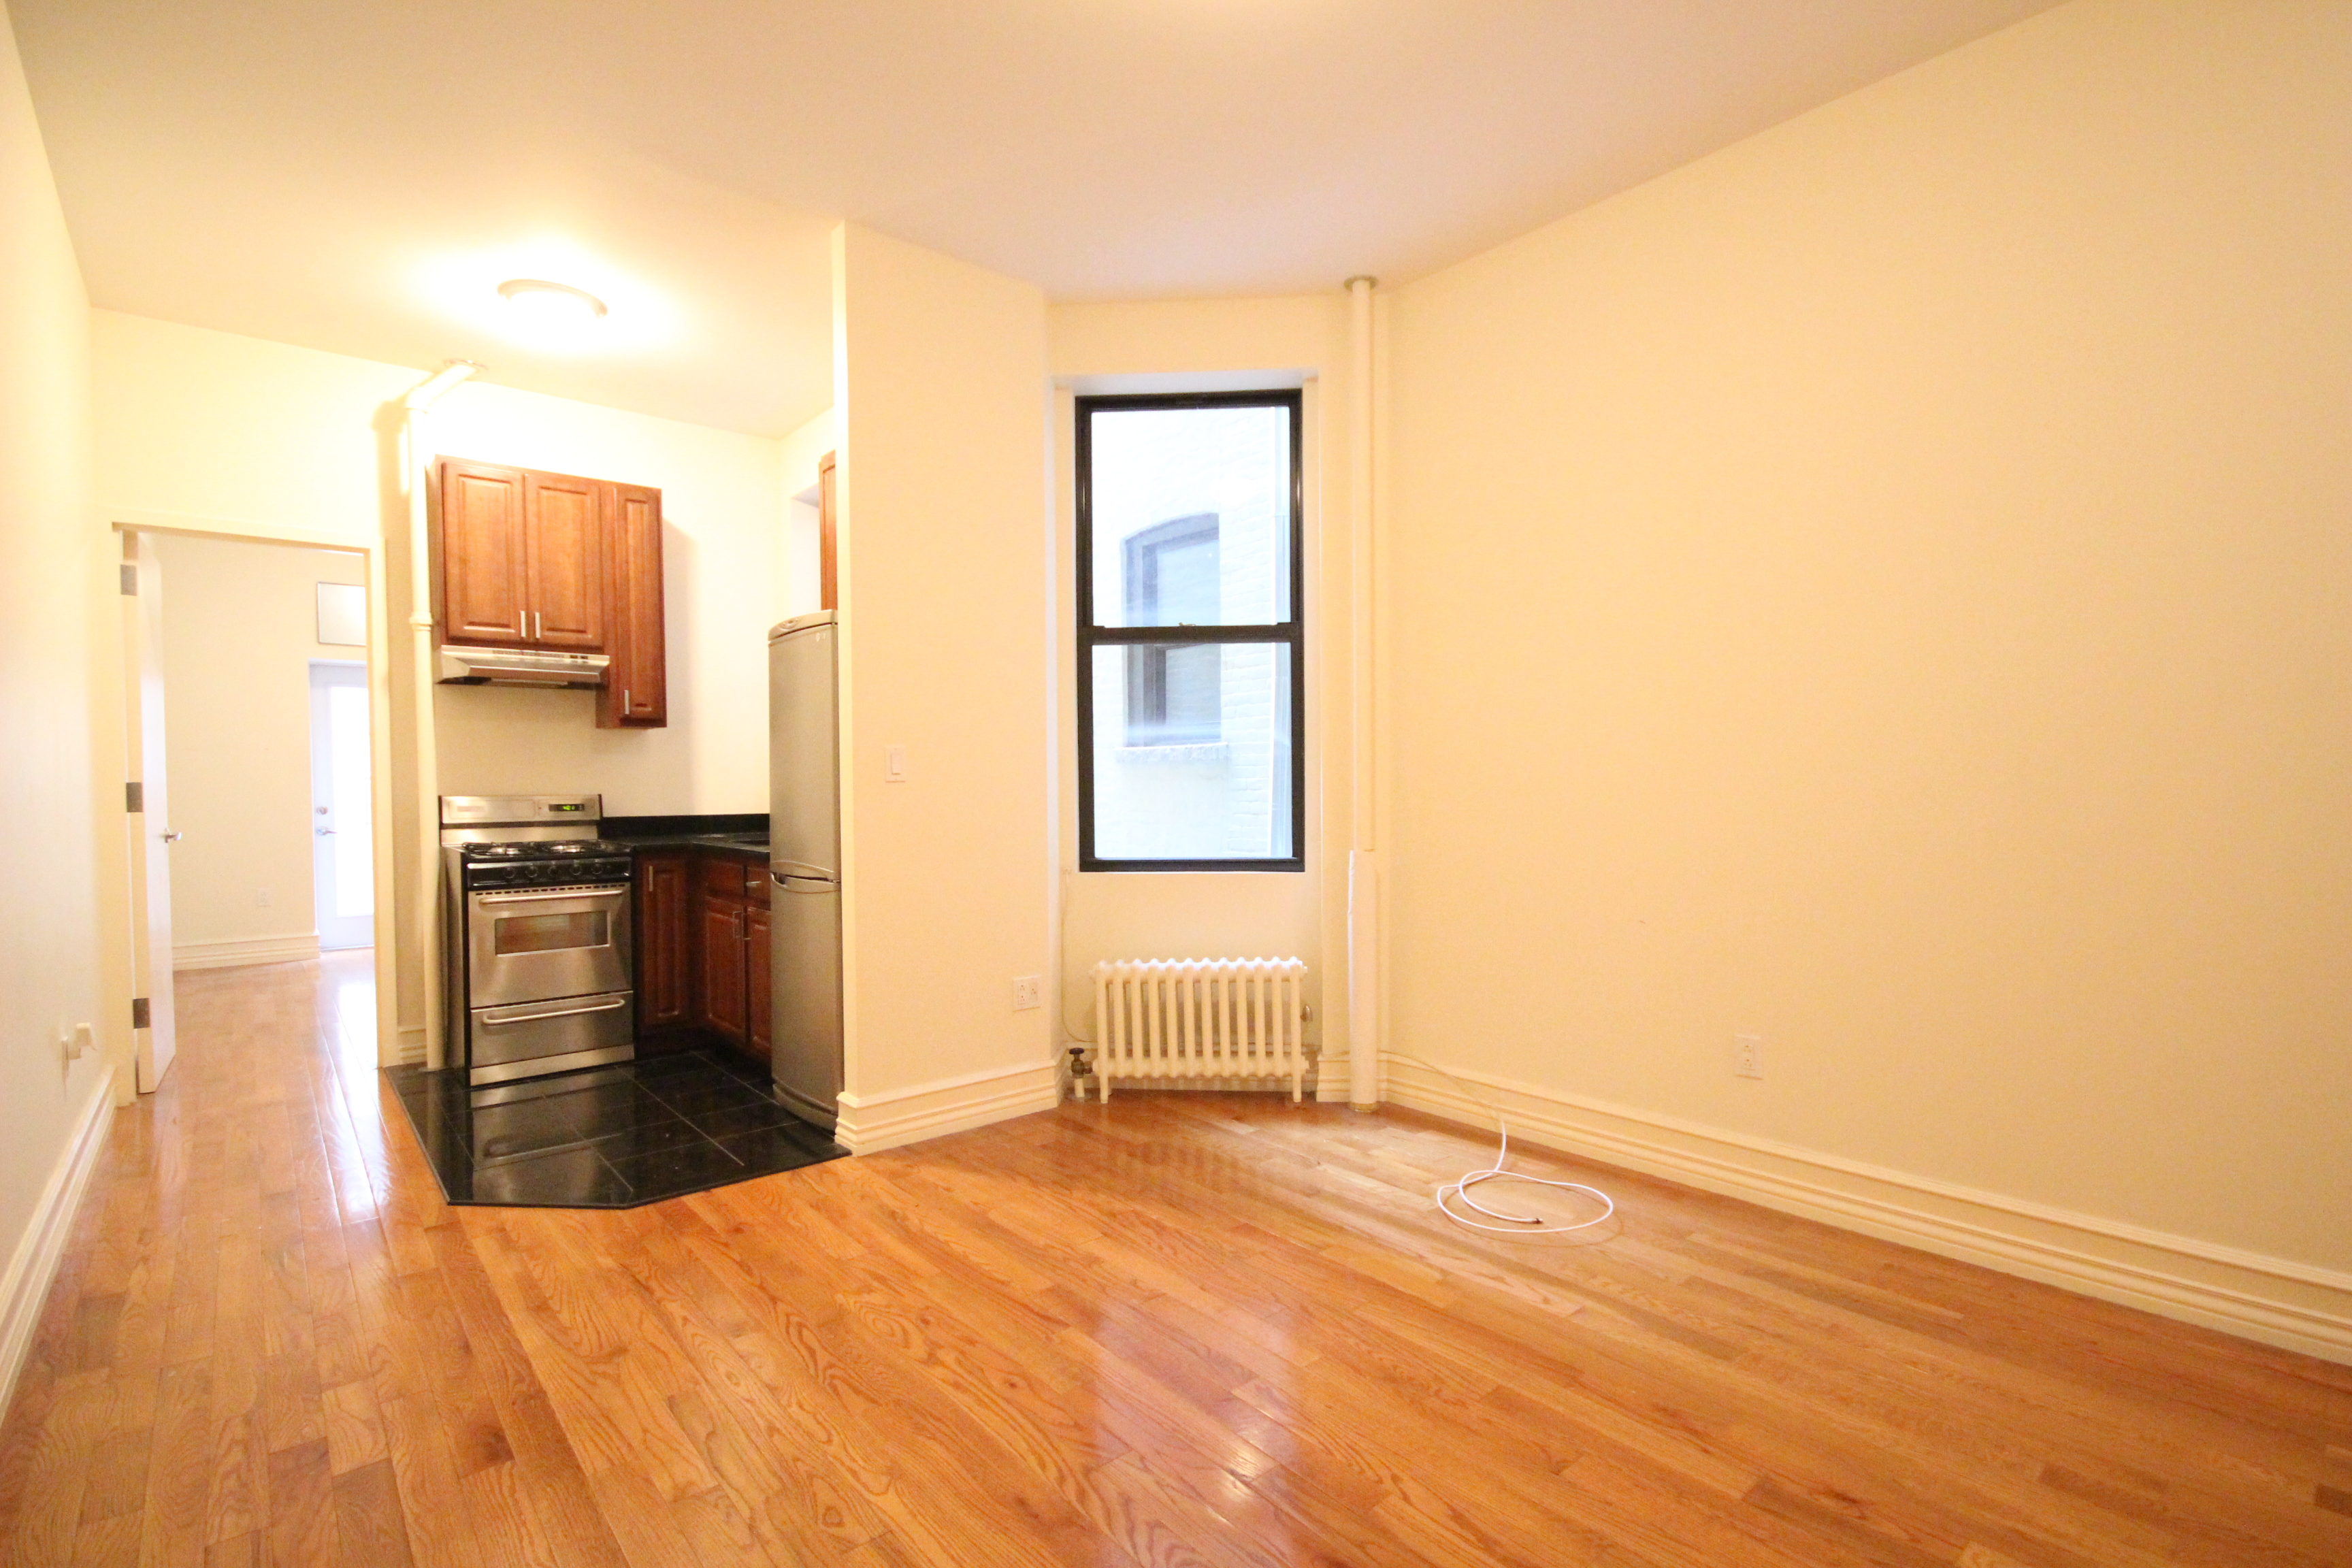 54 West 106th Street 1D Manhattan Valley New York NY 10025